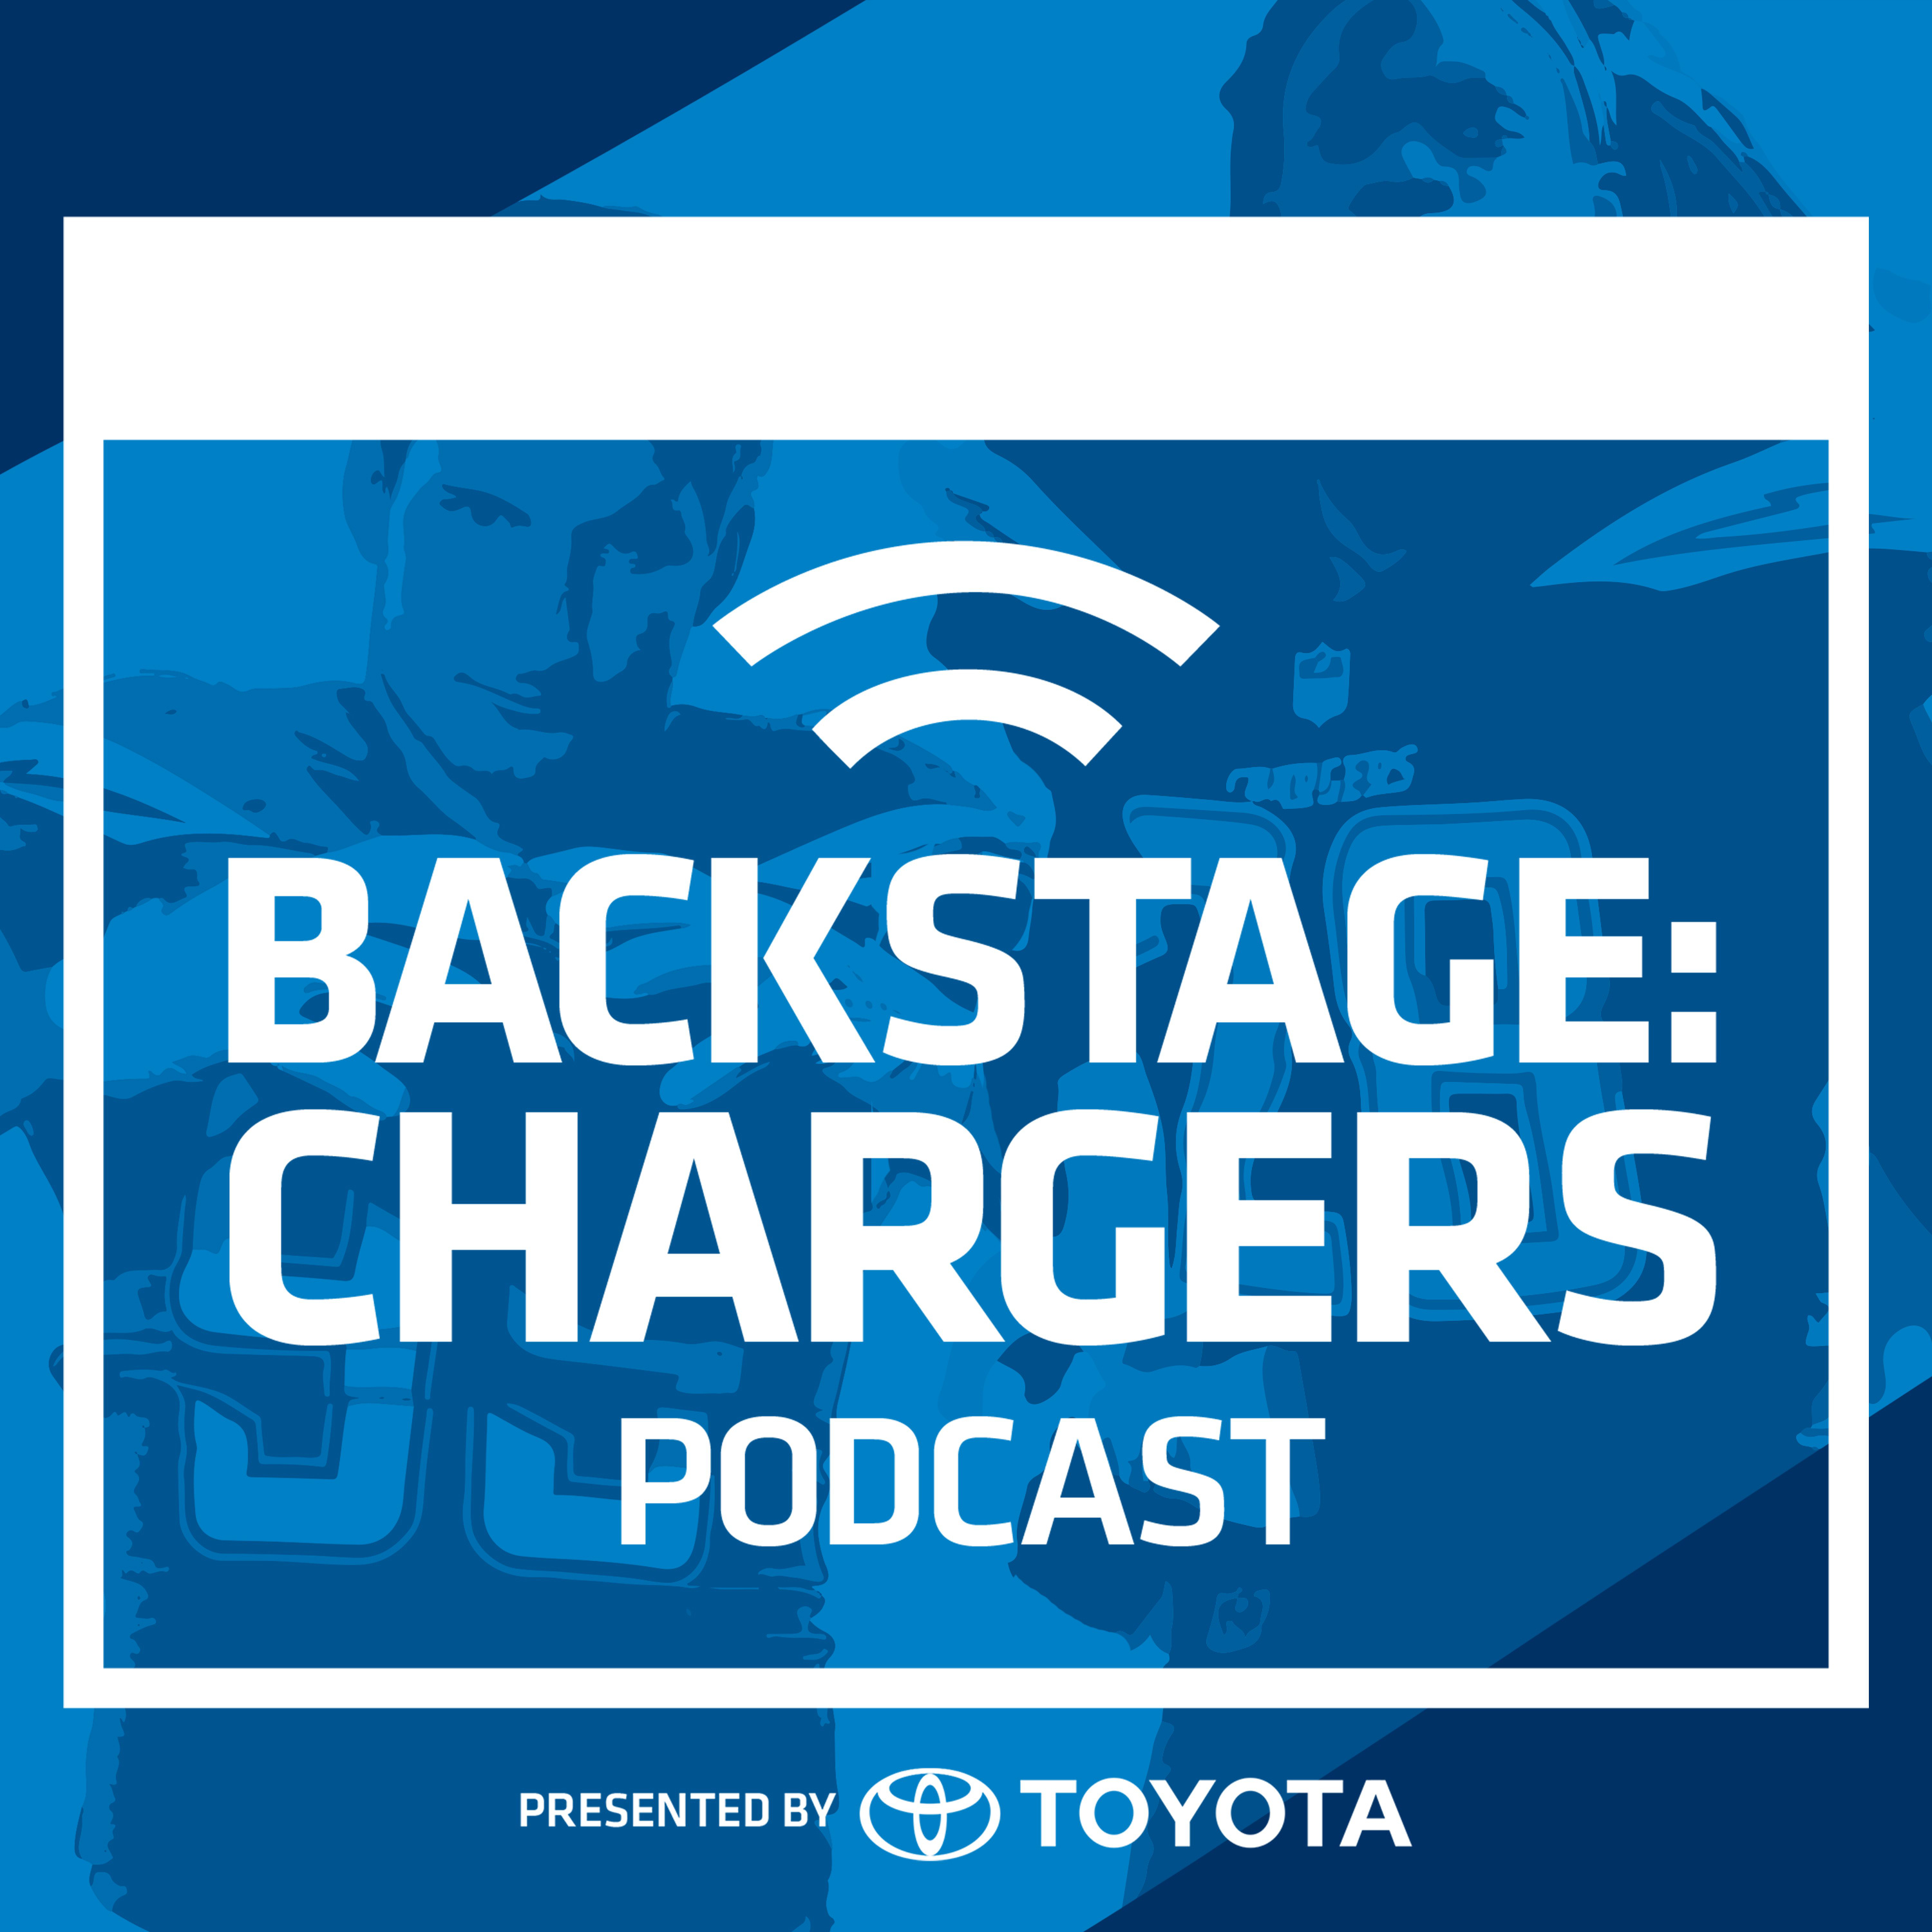 Backstage: Chargers Podcast presented by Toyota